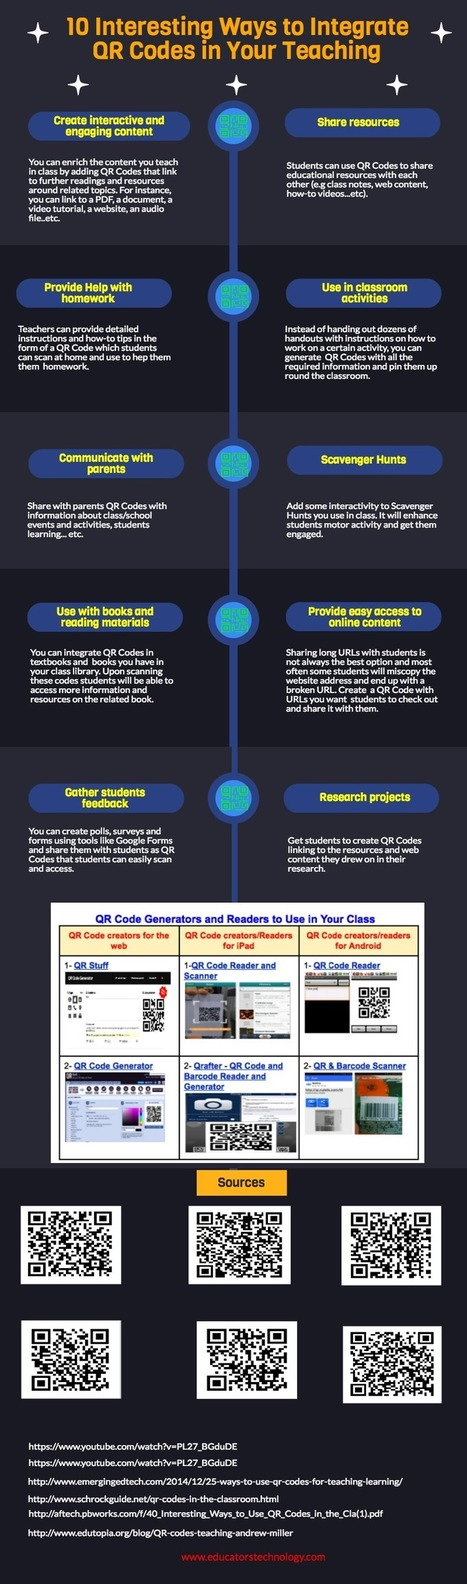 10 Interesting Ways to Integrate QR Codes in Your Teaching (Infographic) ~ Educational Technology and Mobile Learning | Web2.0 et langues | Scoop.it